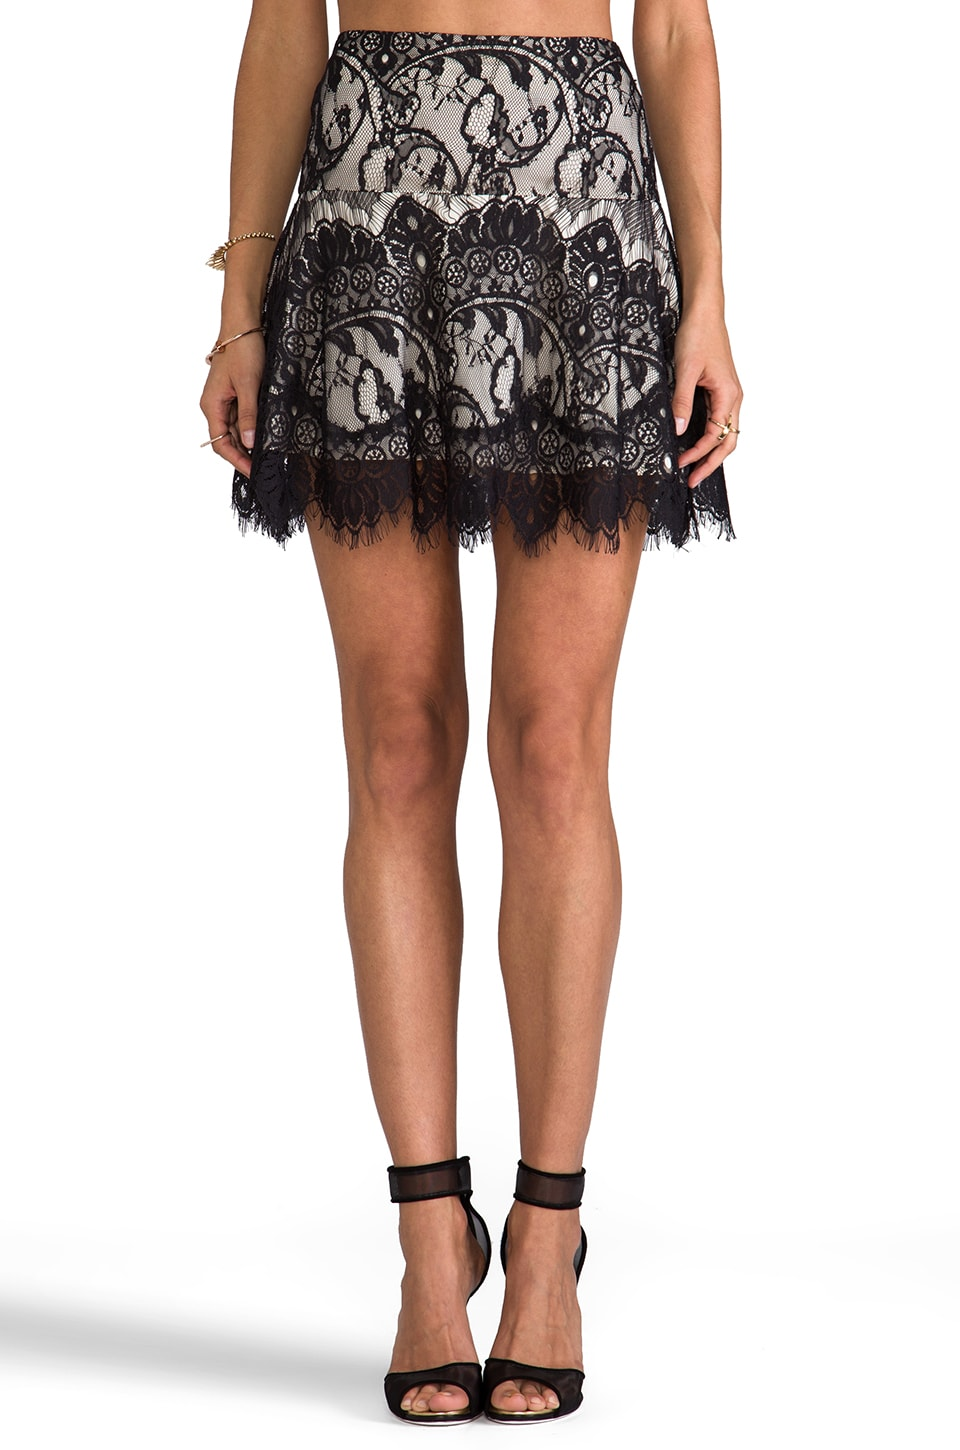 BB Dakota Theadora Scallop Lace Skater Skirt in Black